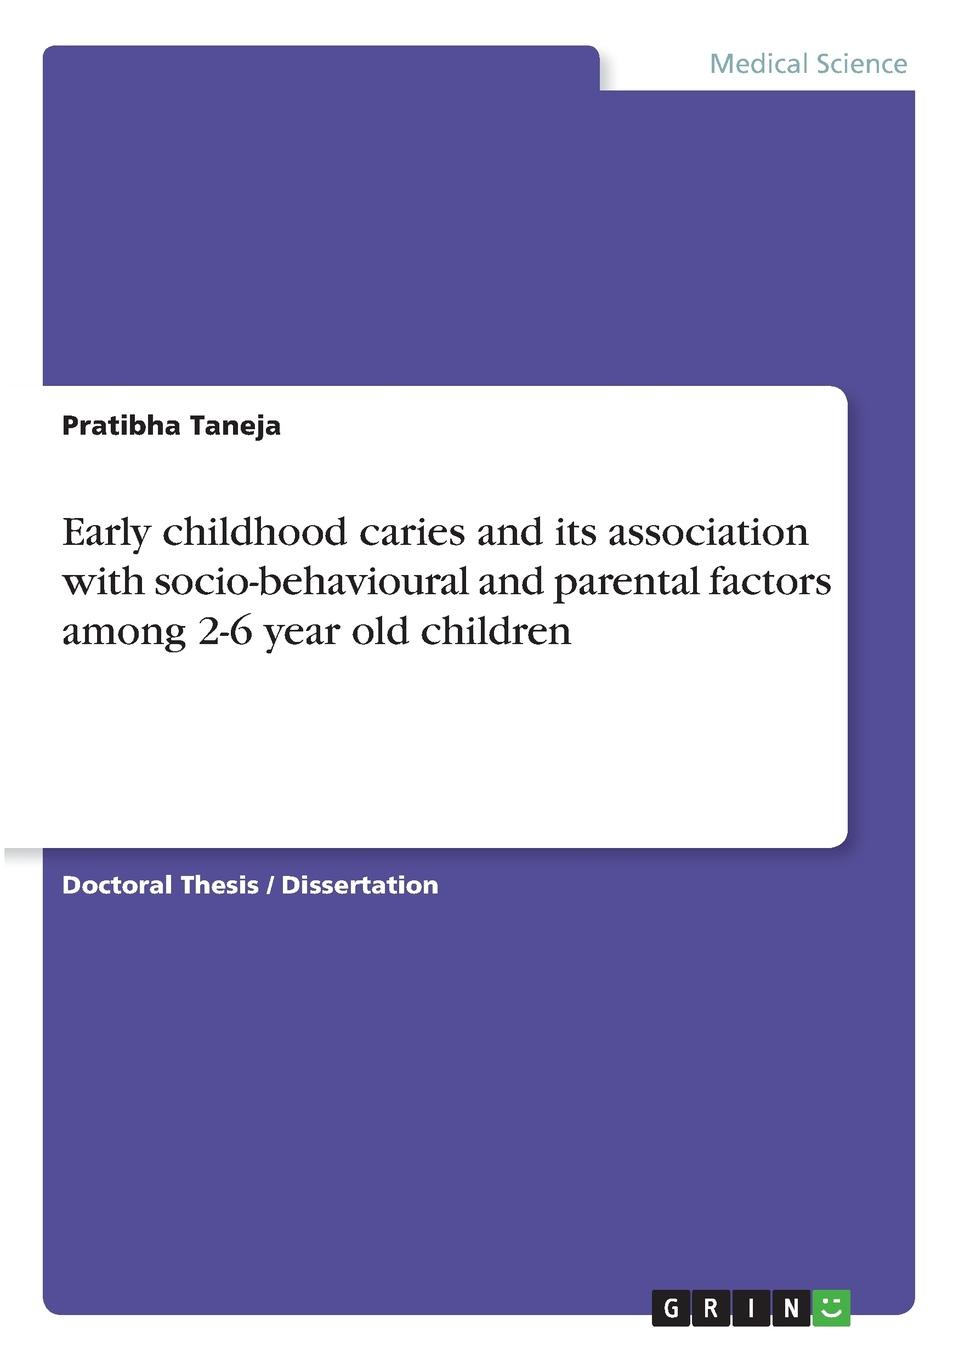 Pratibha Taneja Early childhood caries and its association with socio-behavioural and parental factors among 2-6 year old children abhishek kumar reproductive and child health among poor and non poor in urban india